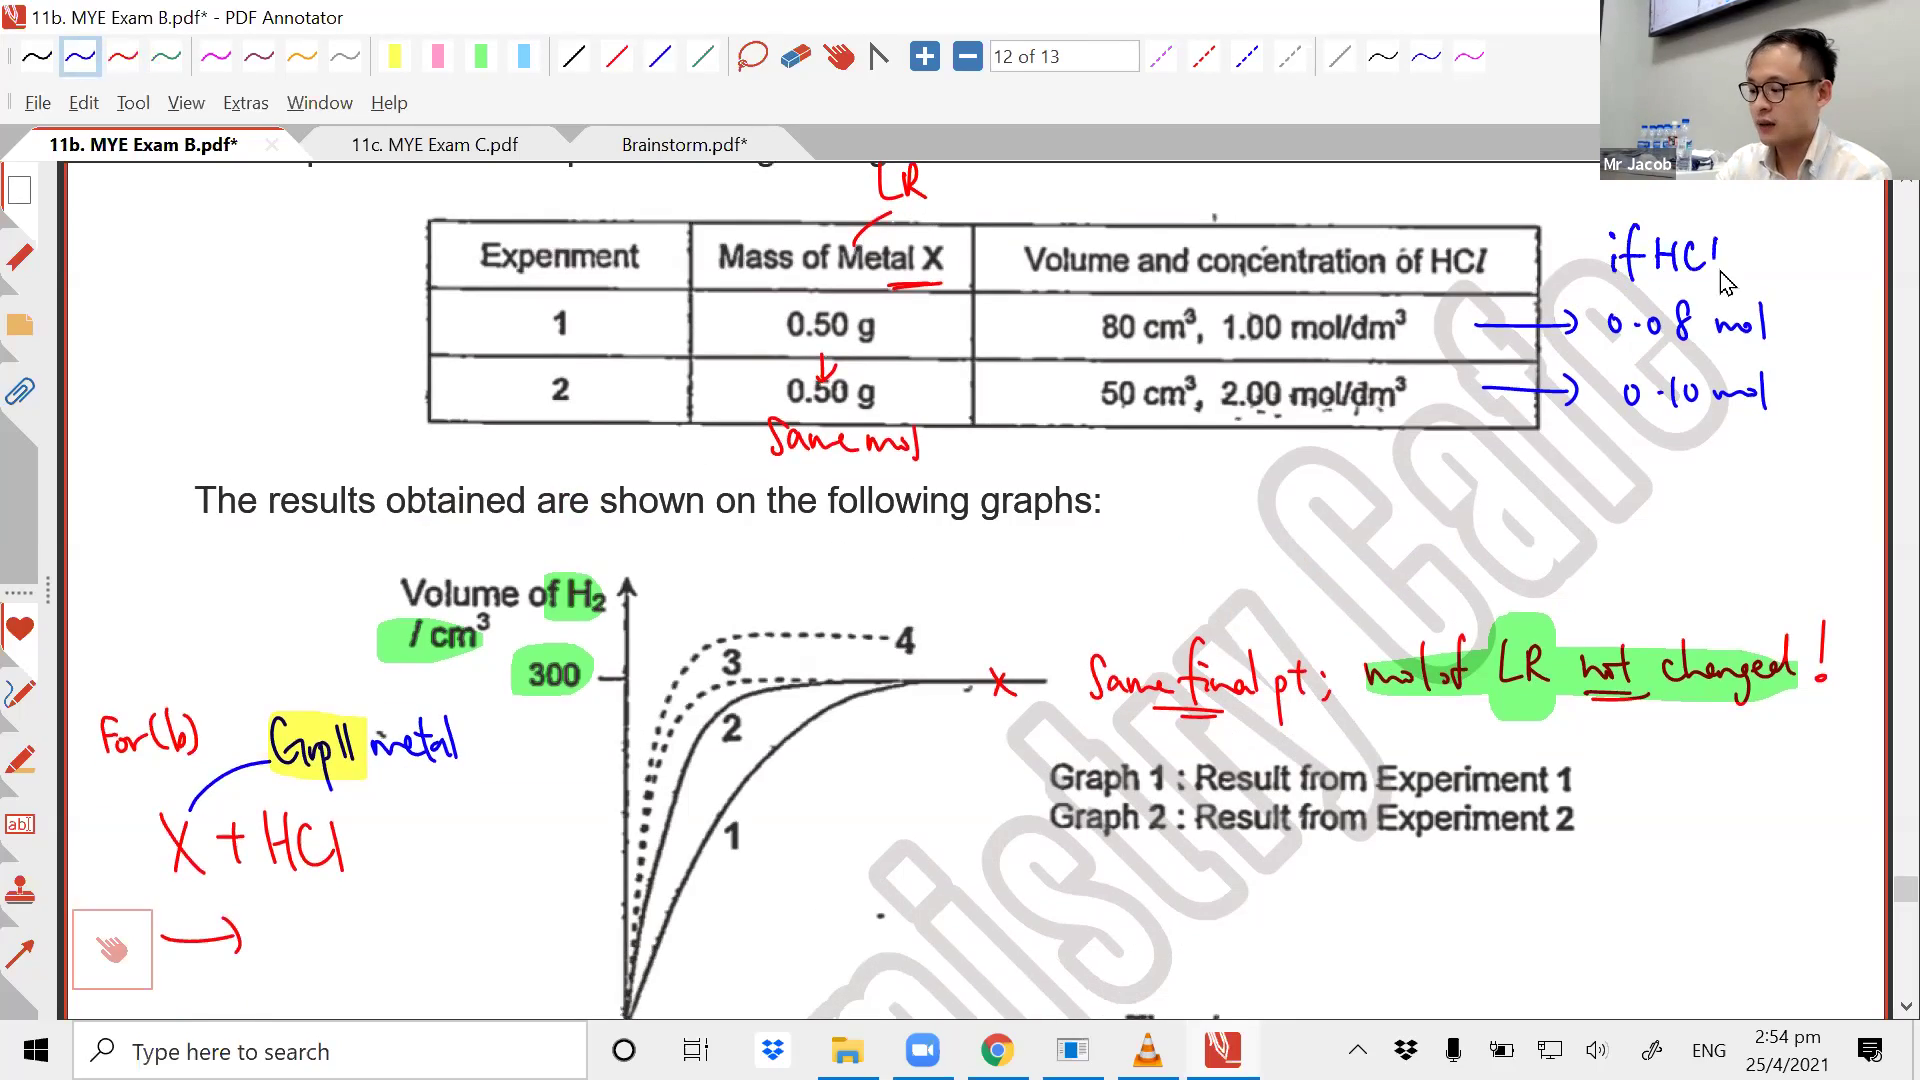 [SPEED OF REACTION] Measurement and Calculations